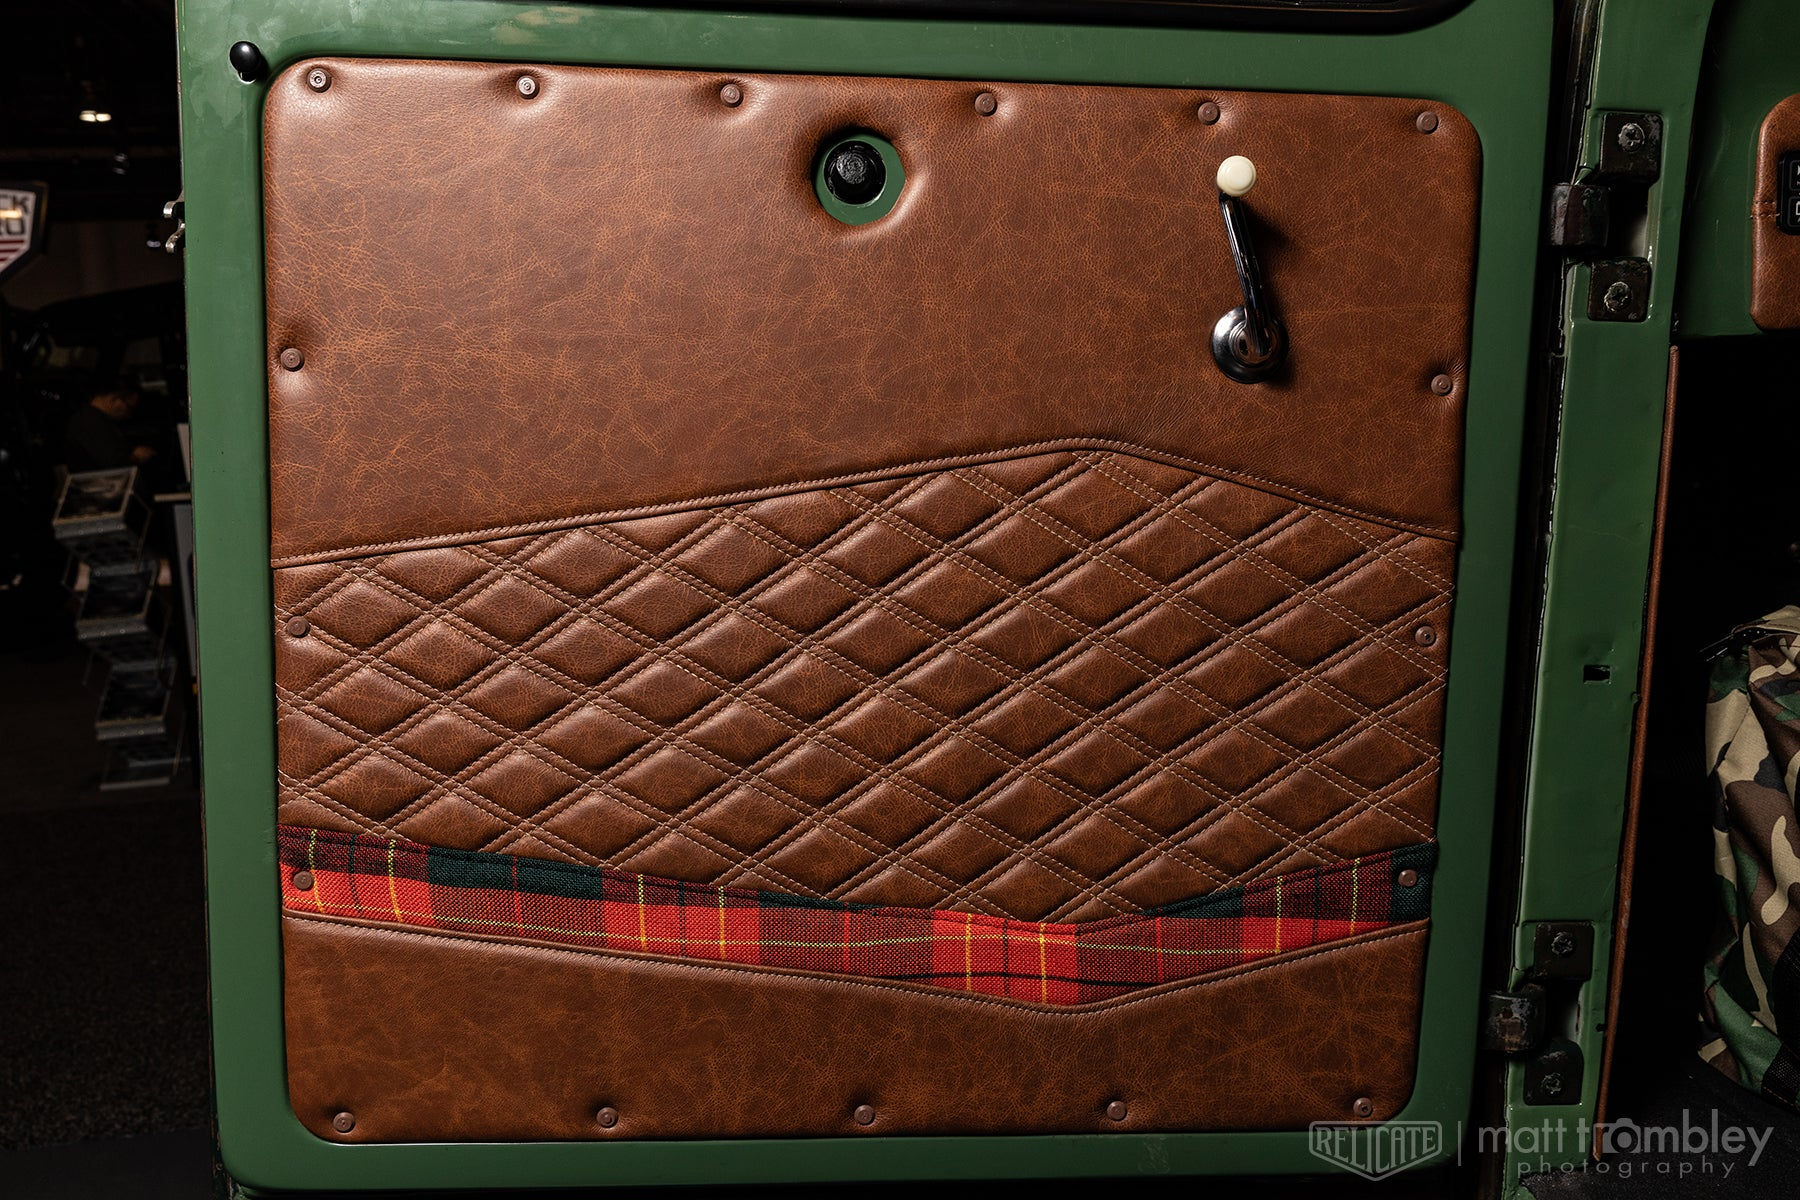 1951 willys jeep pickup relicate distressed leather plaid interior door panel